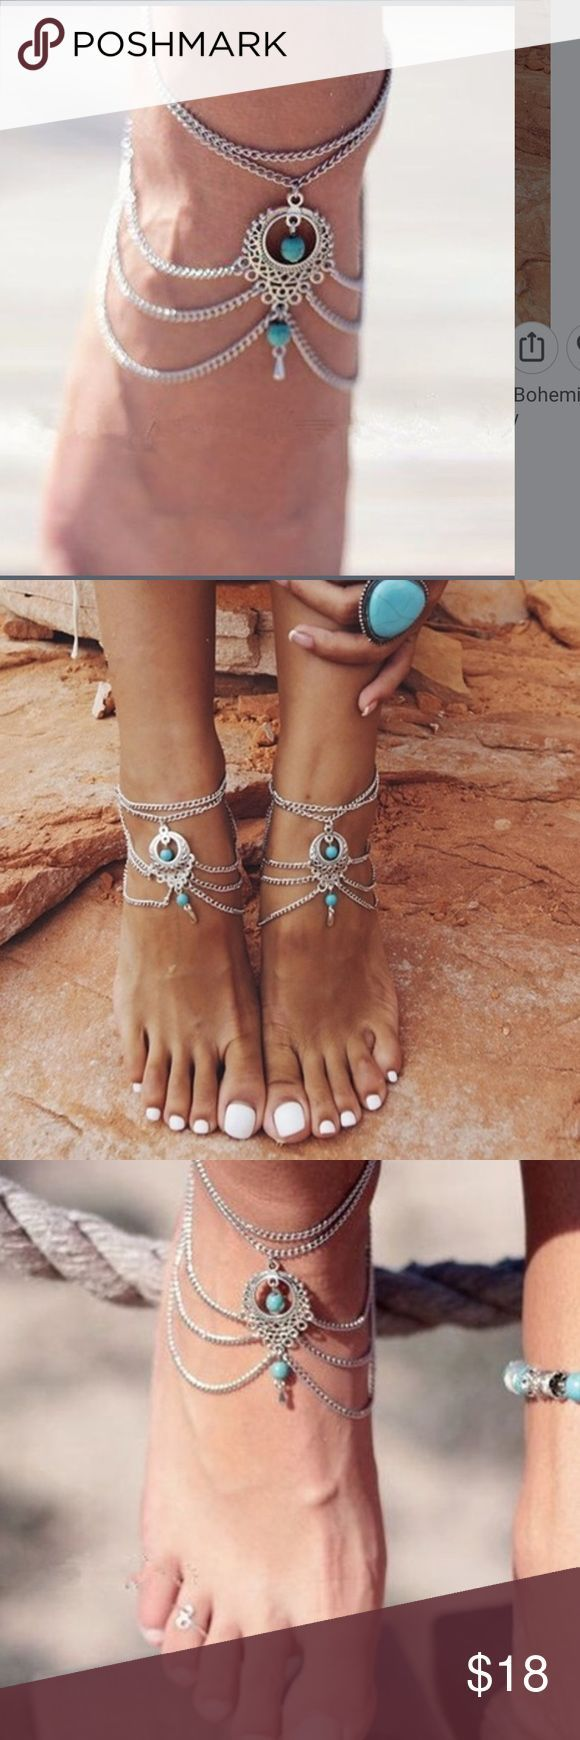 bracelets silver qvc bracelet anklet ultrafine sunburst and buy ankle anklets now pin it